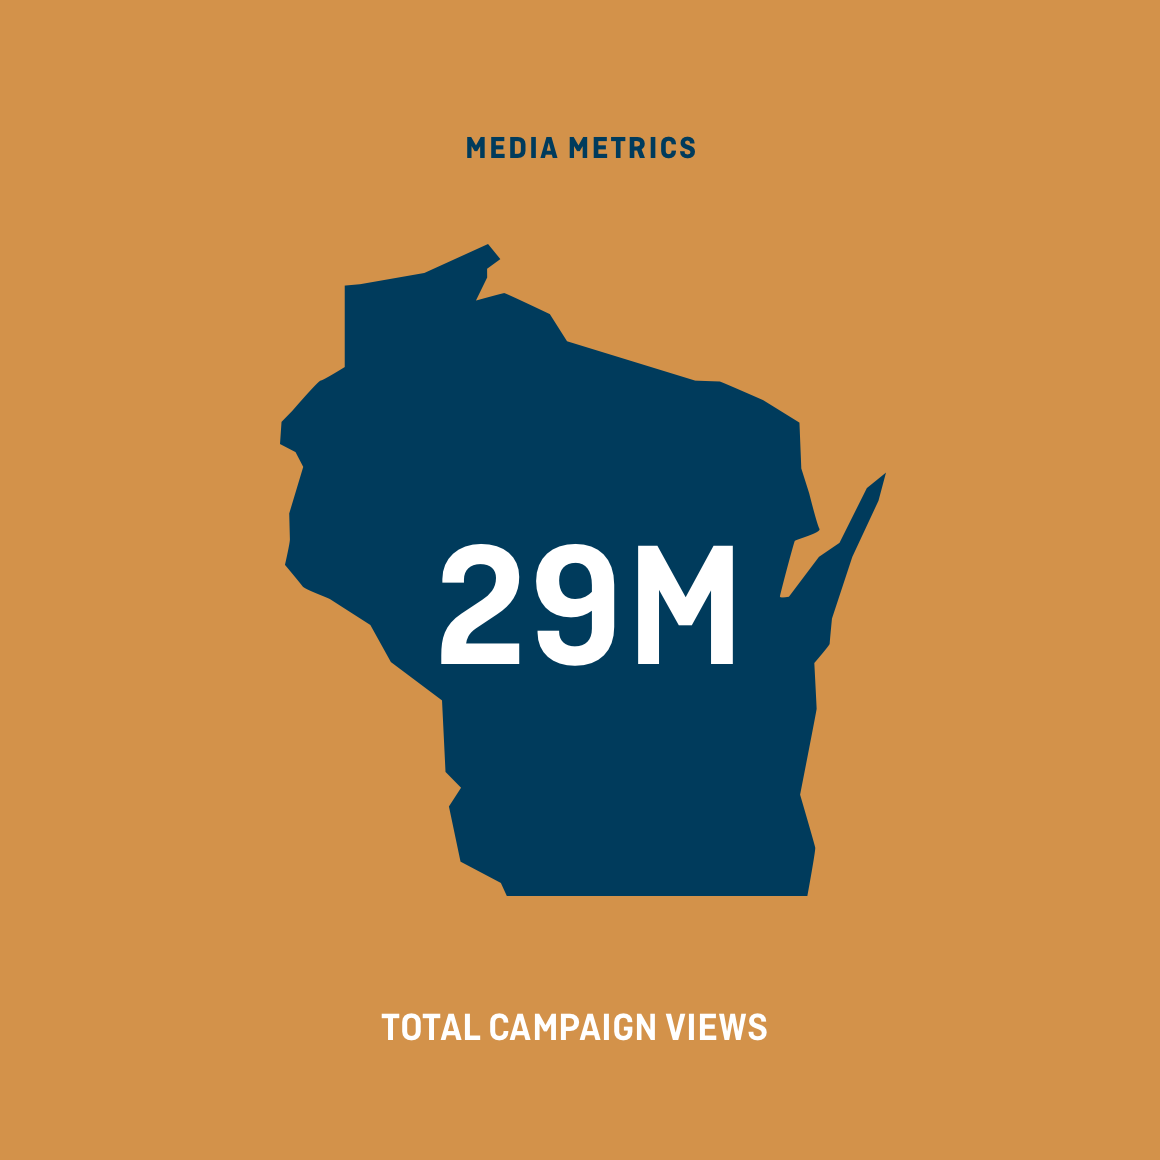 Graphic of the state of Wisconsin showing 29 million campaign views